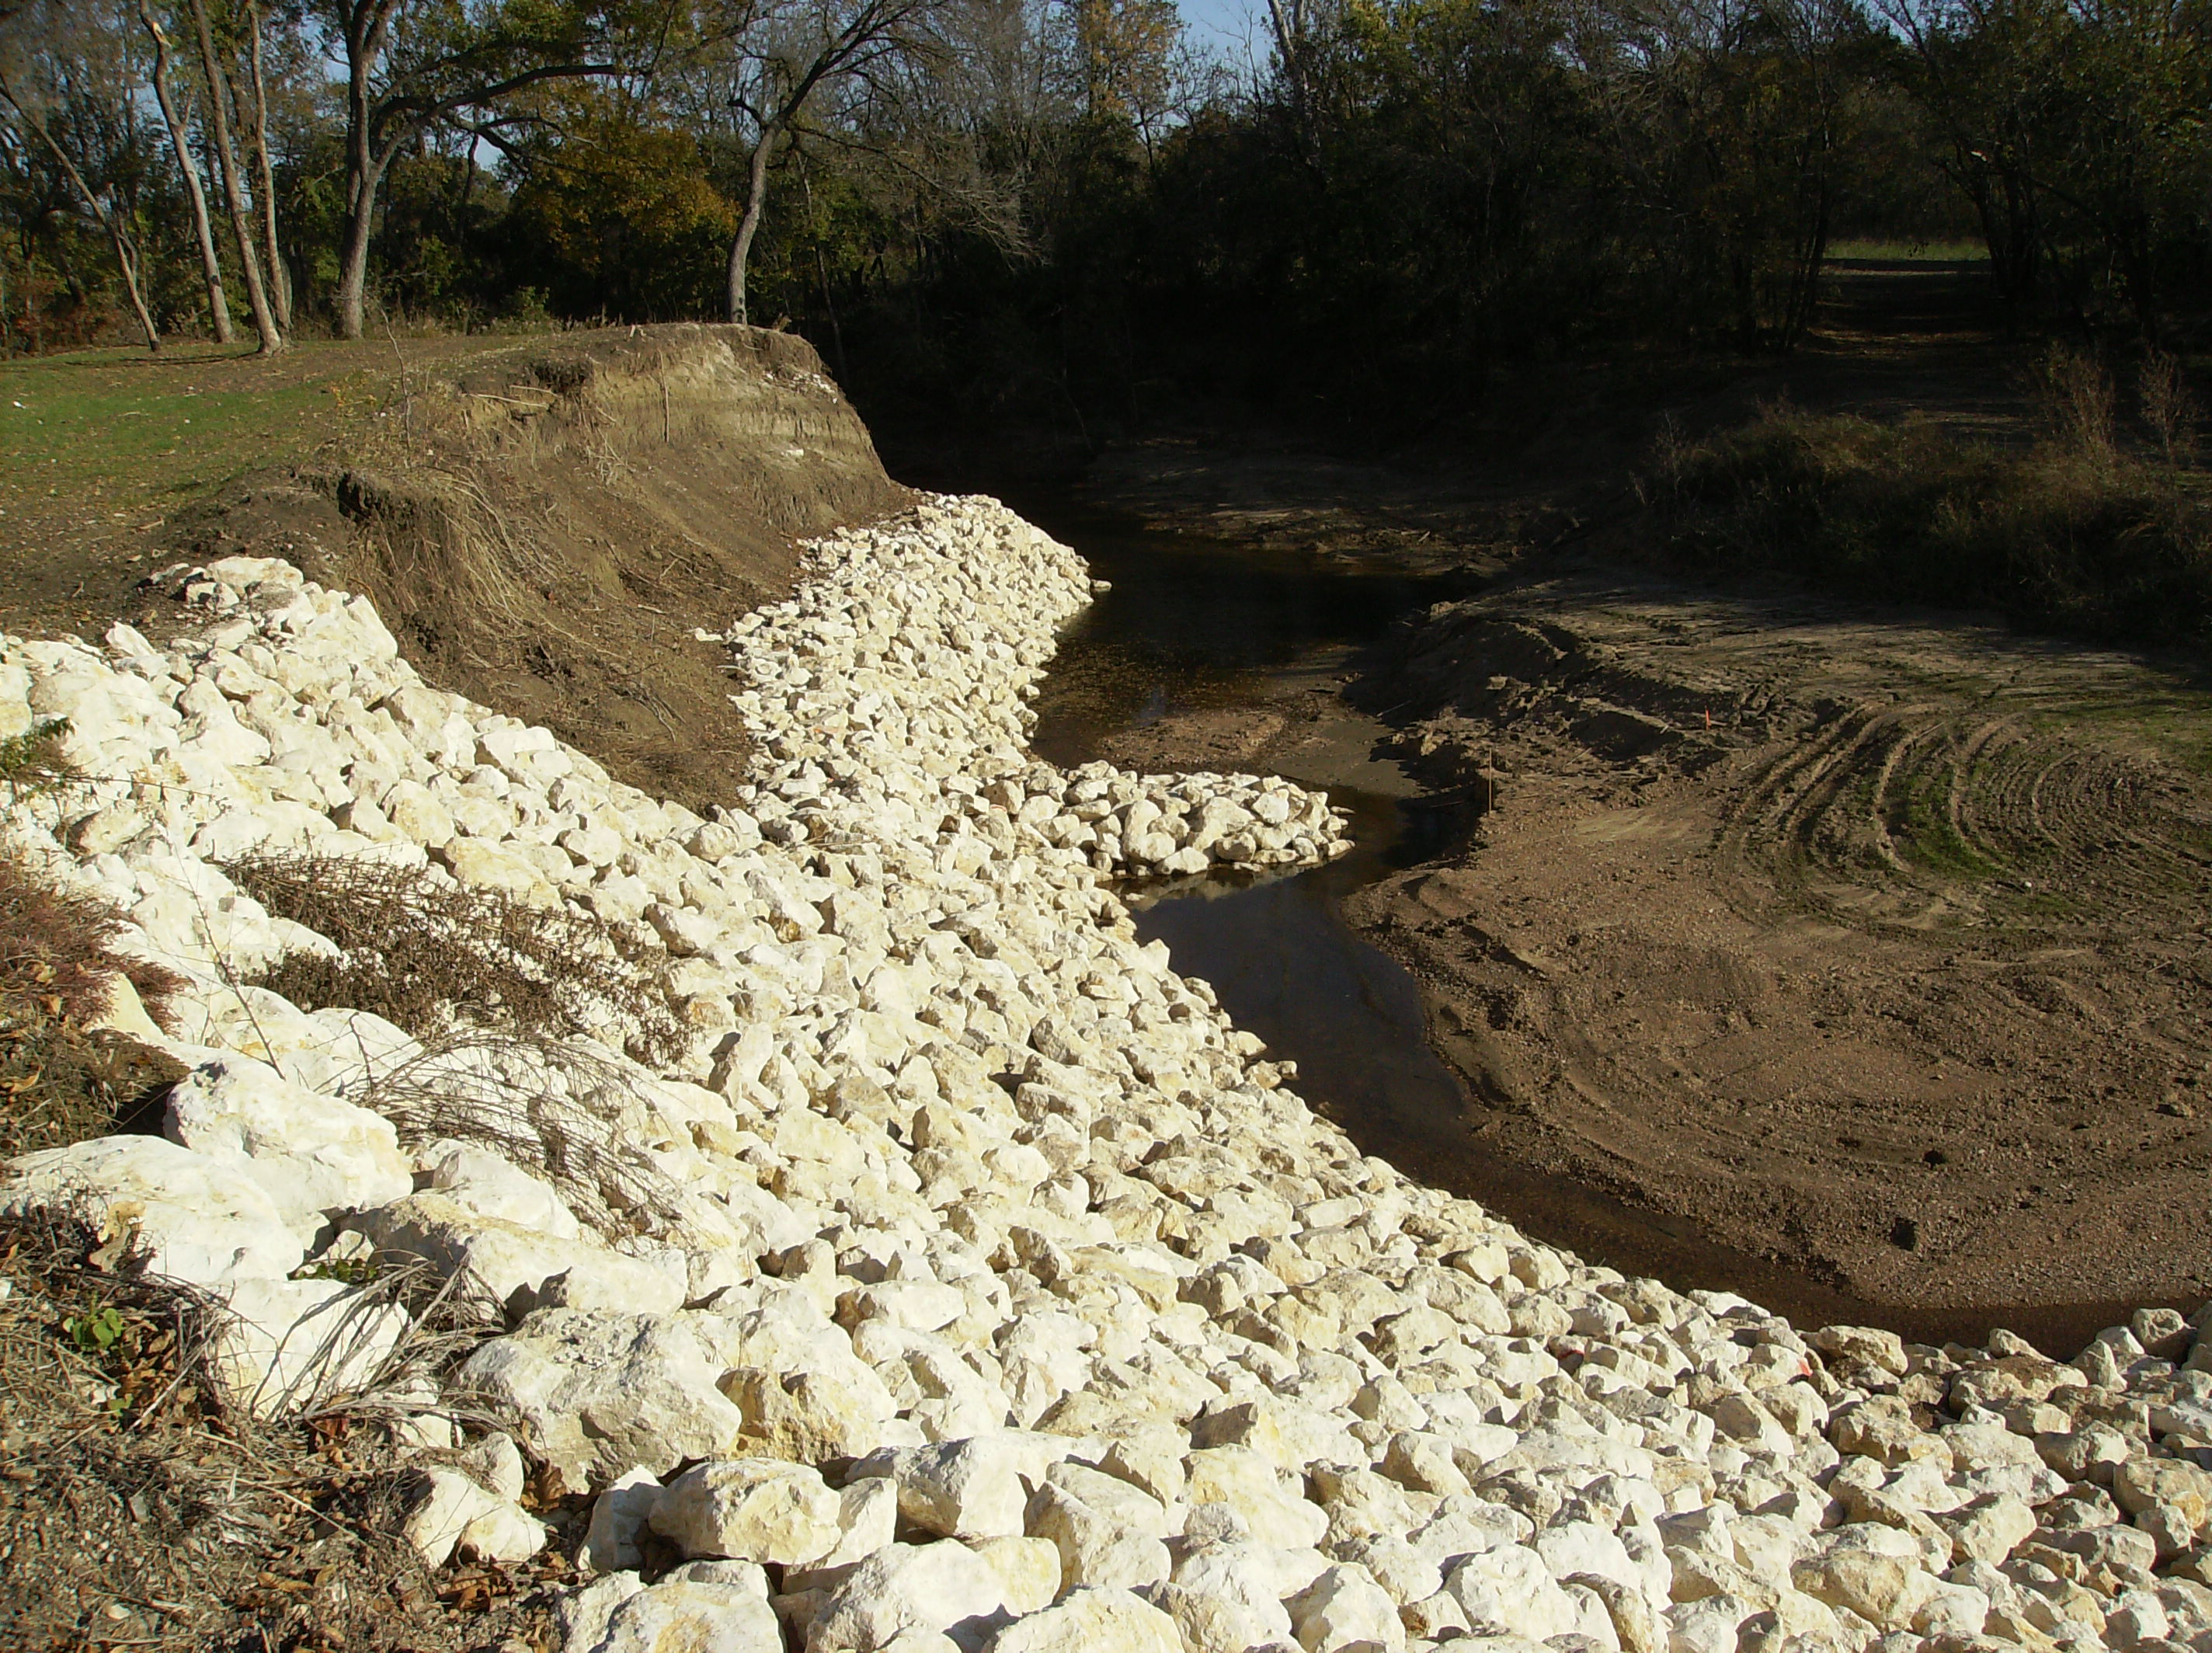 White rocks helping to stop the erosion